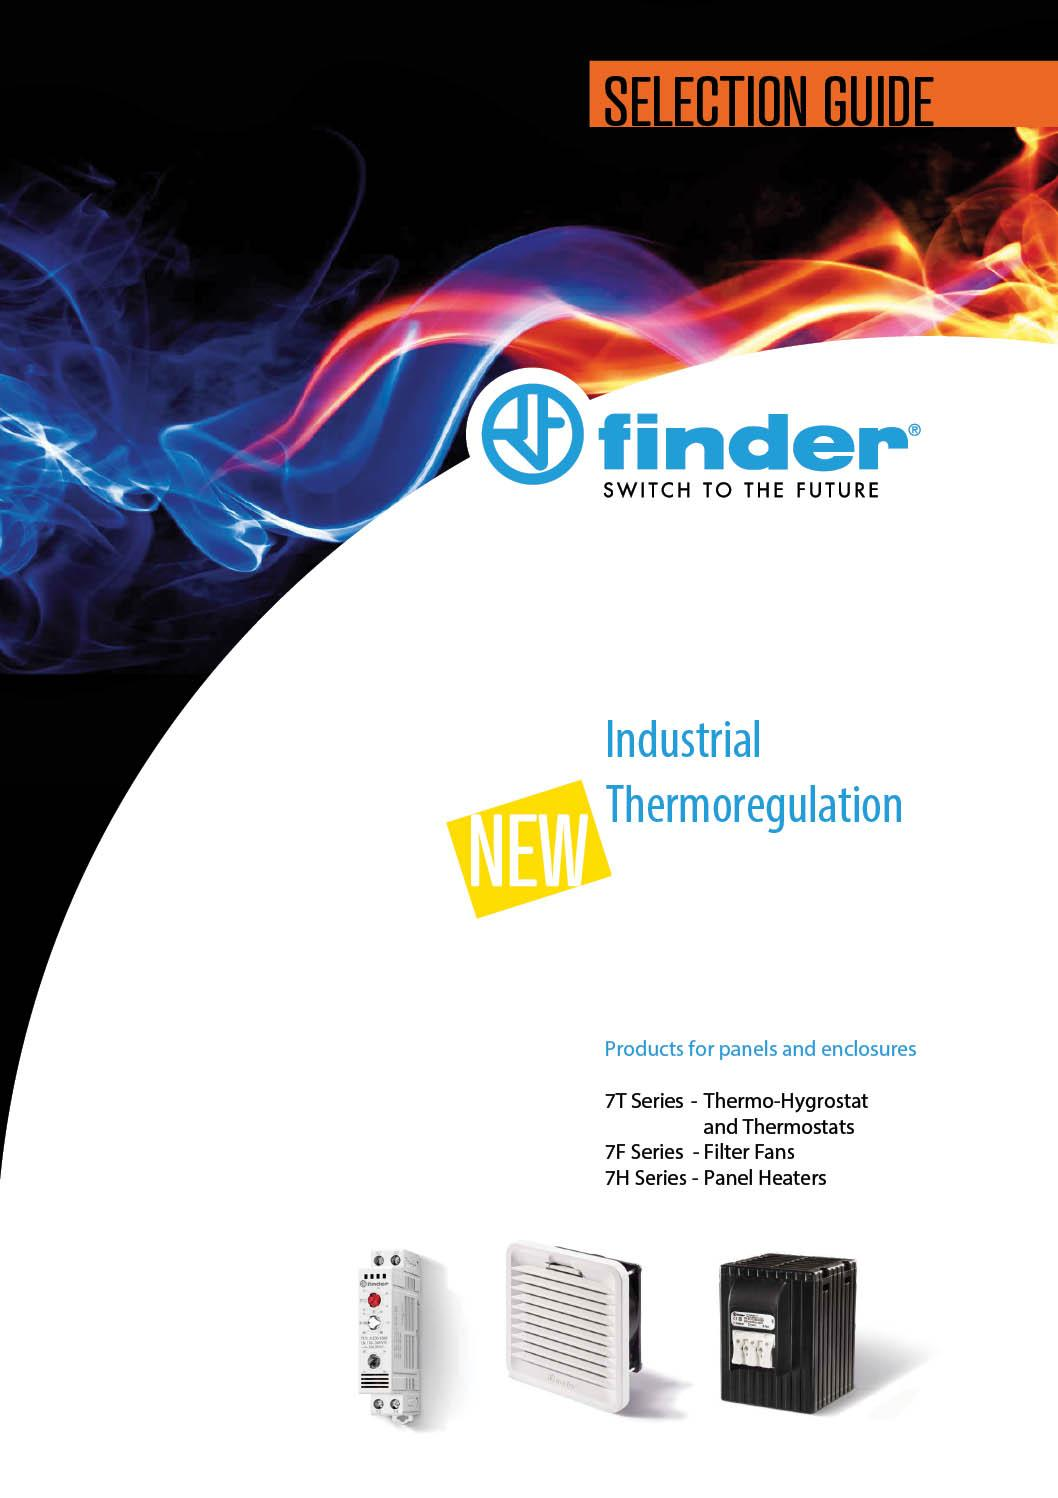 Finder Industrial Thermoregulation supplied by ElectroMechanica